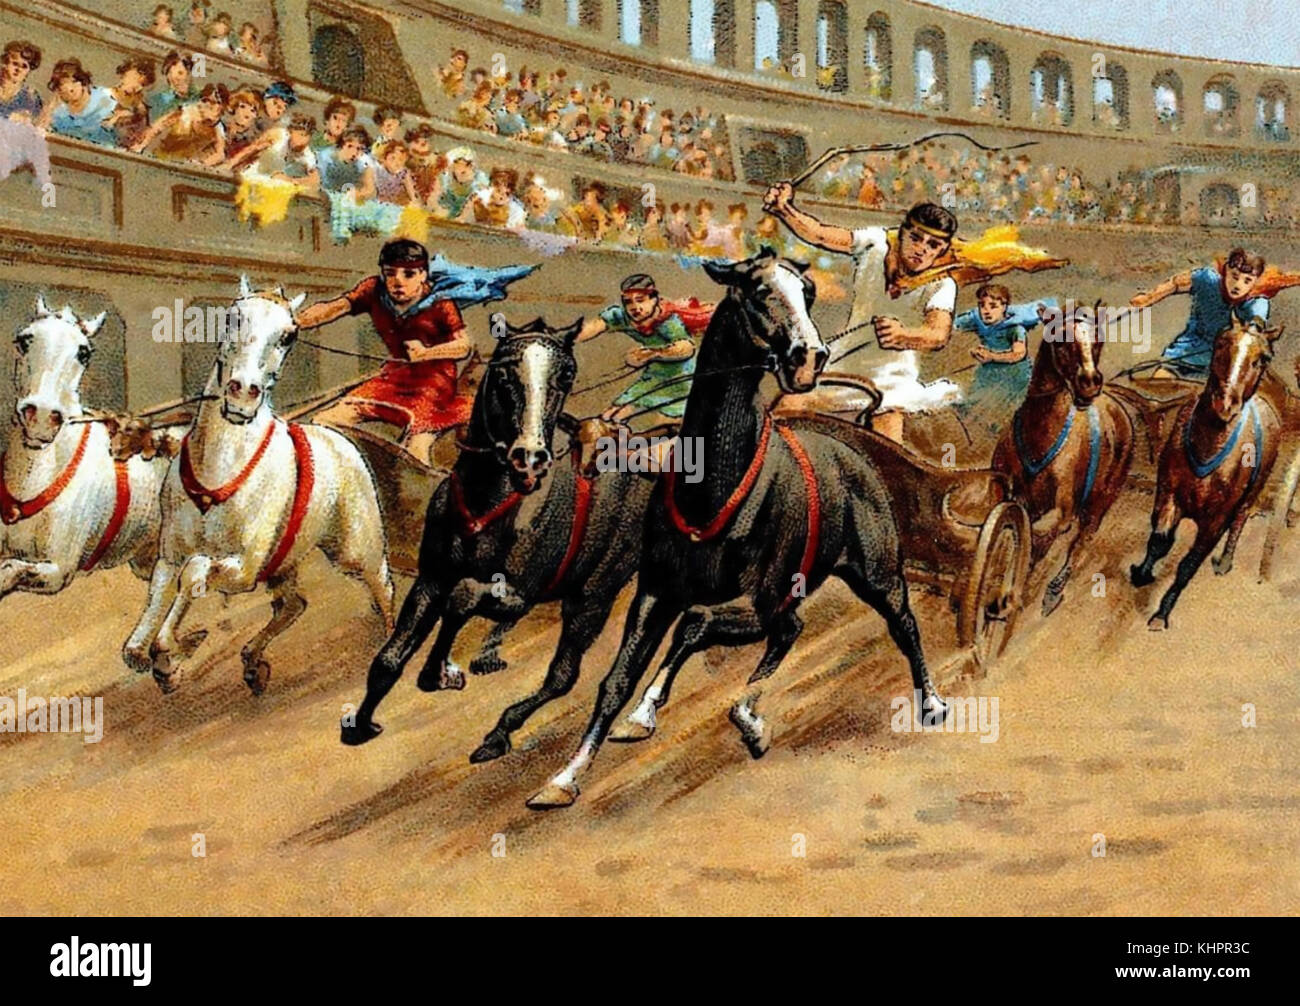 CHARIOT RACING in ancient Rome on a cigarette  card about 1910 - Stock Image